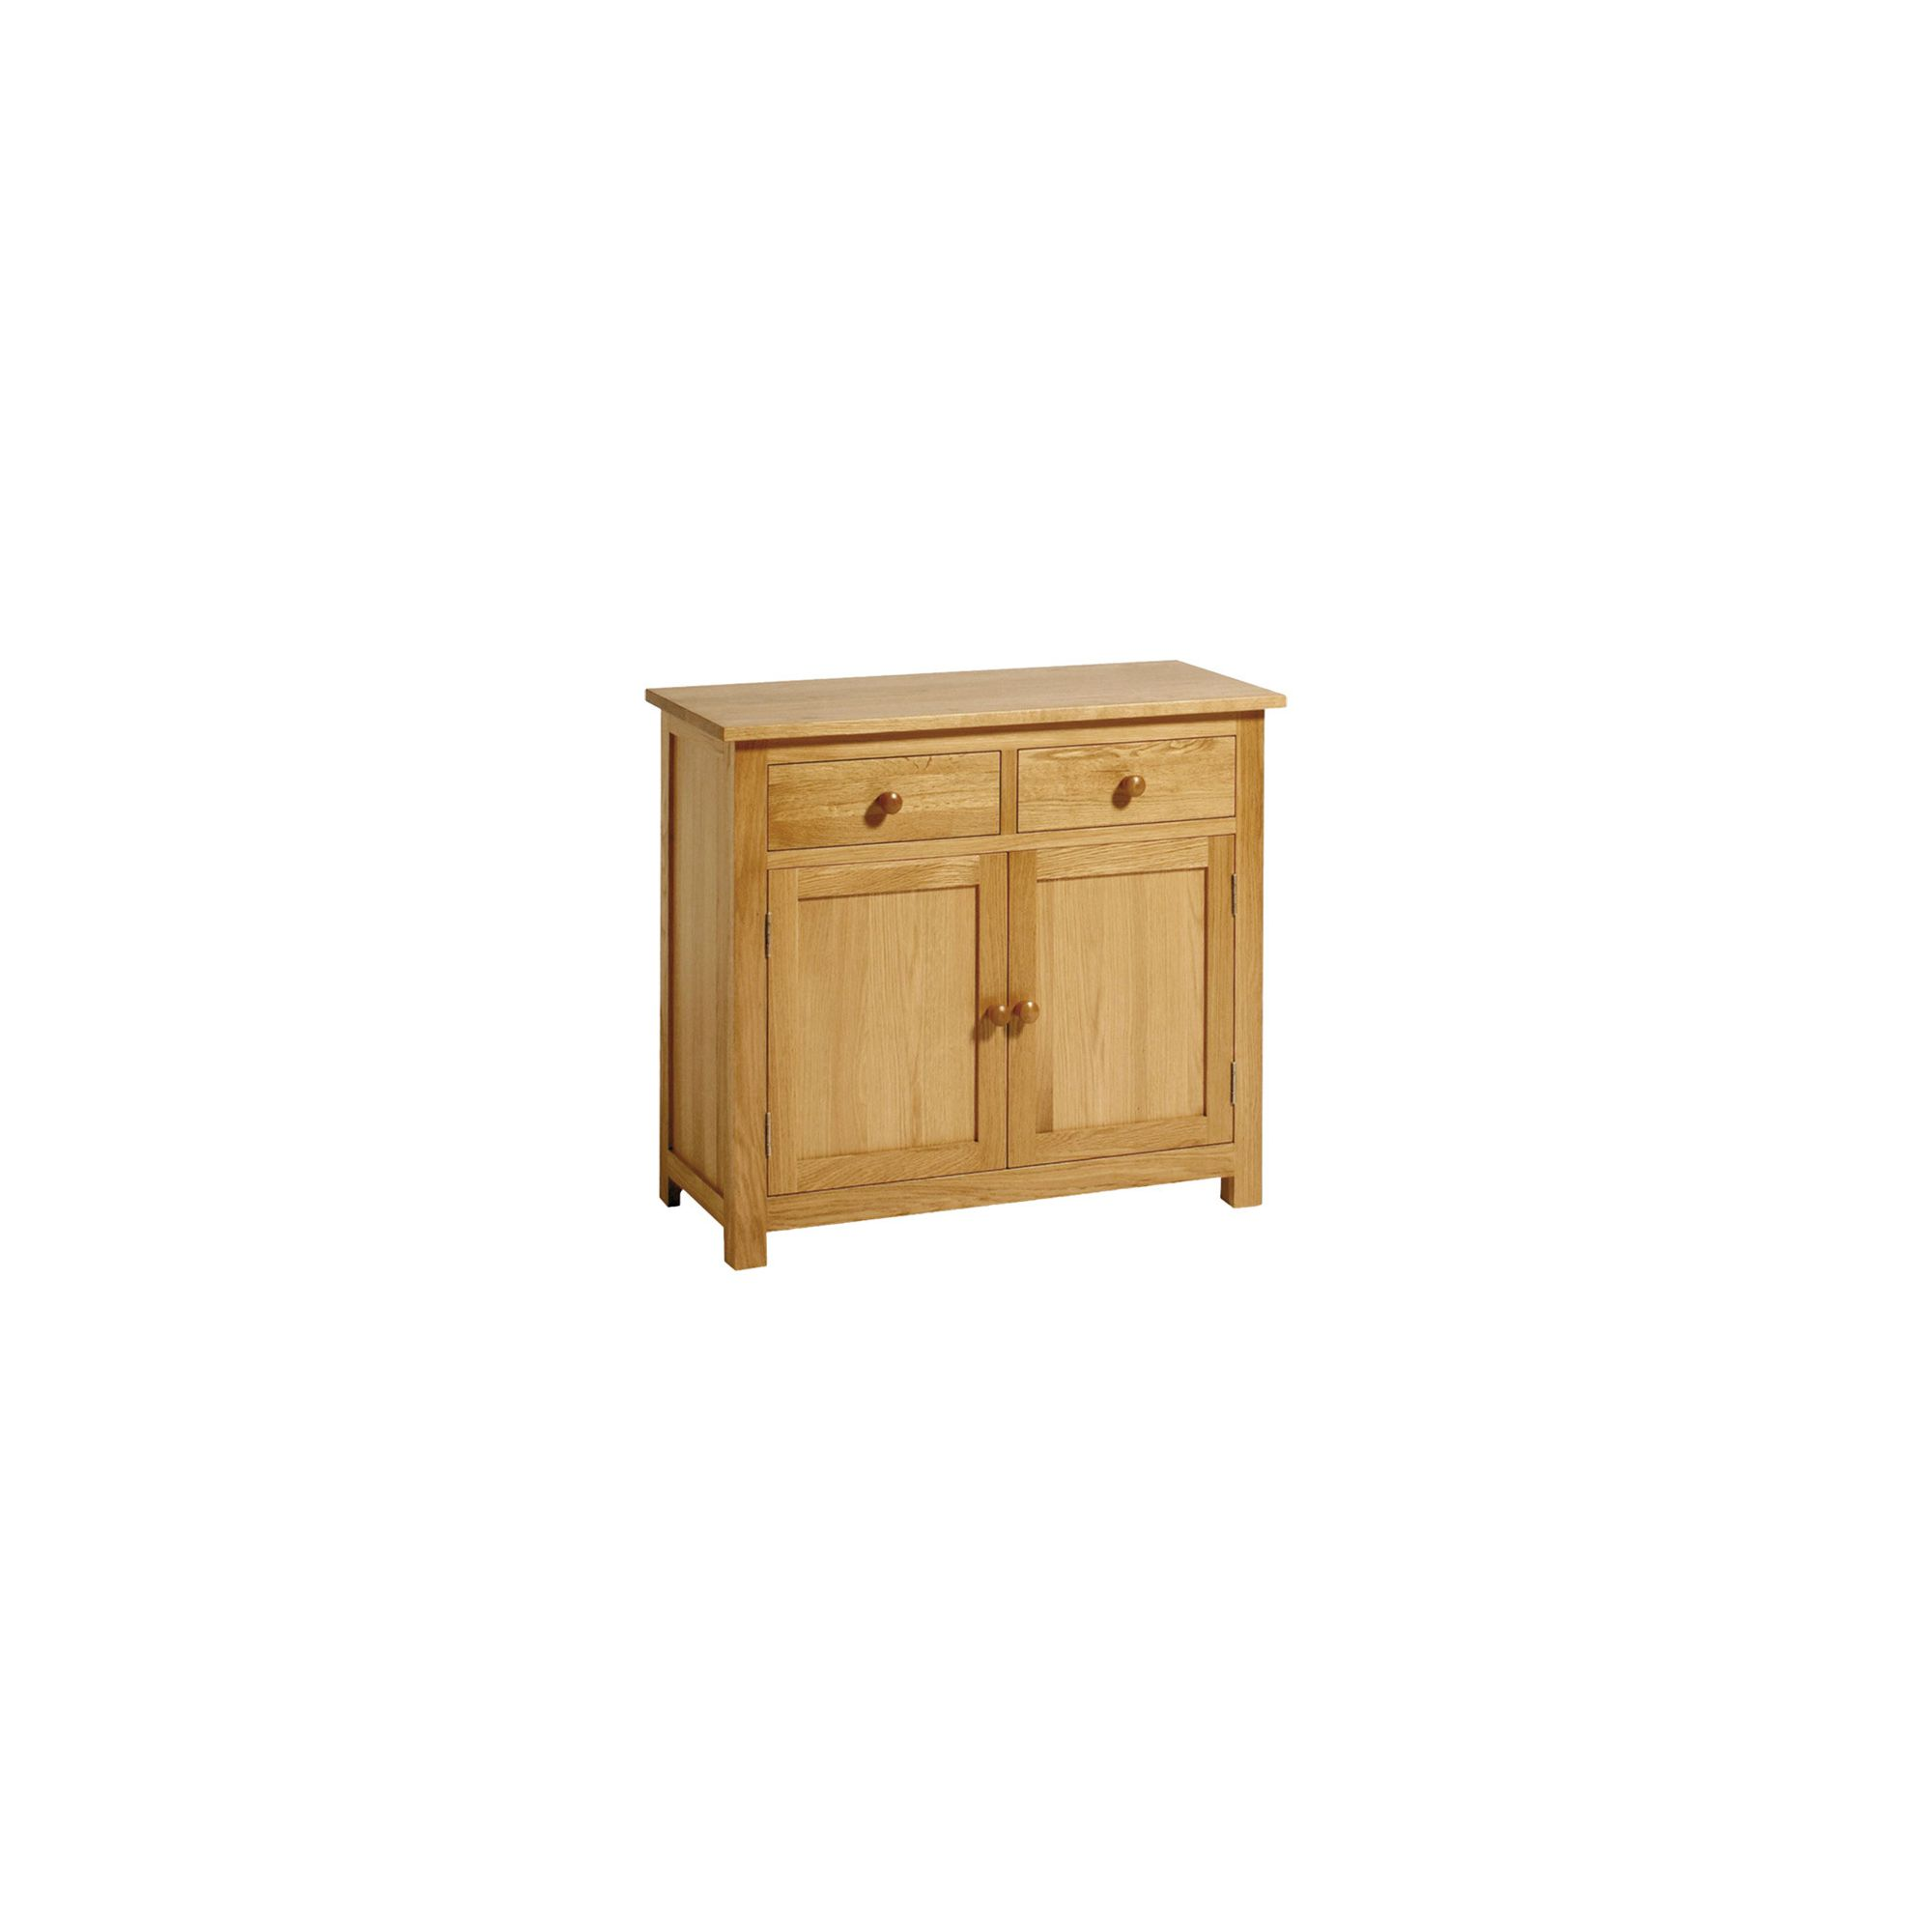 Kelburn Furniture Washington Oak 2 Drawer Sideboard at Tesco Direct